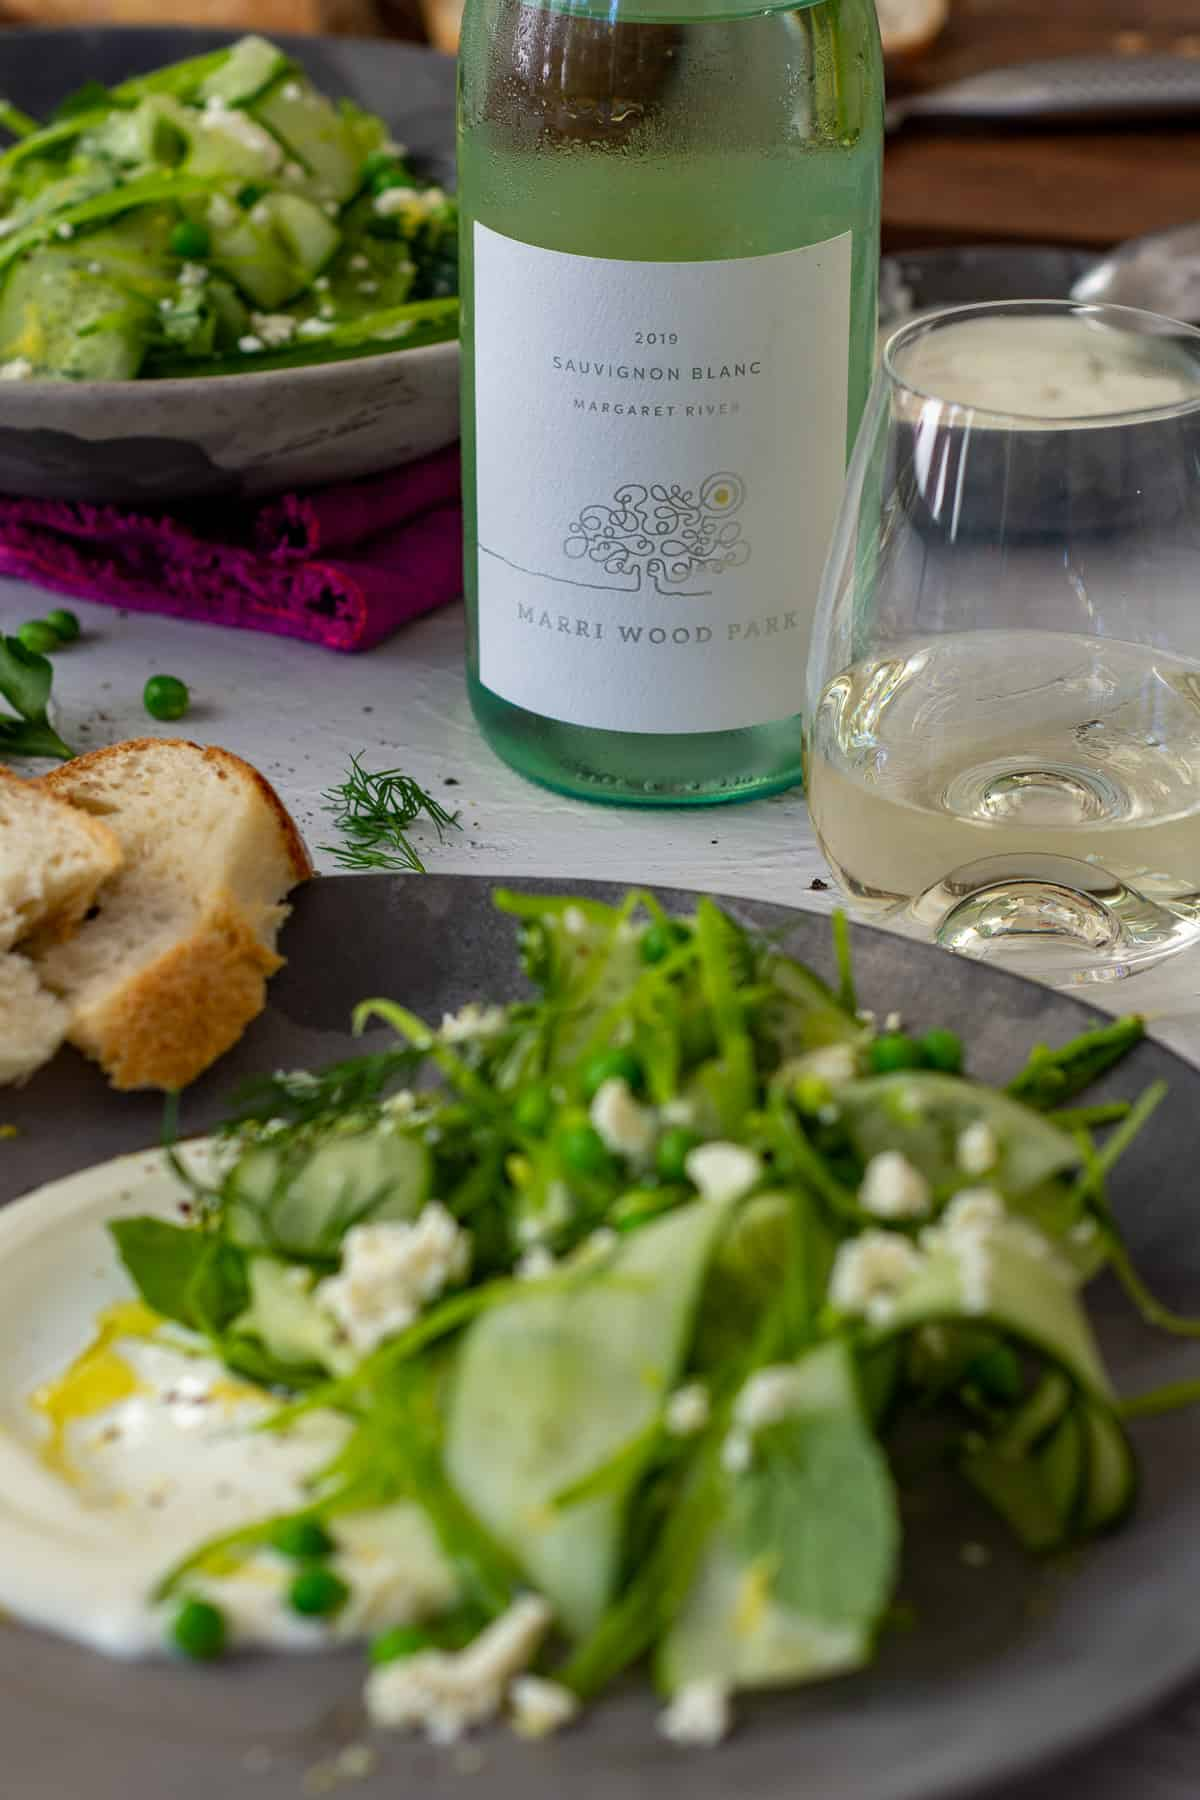 English pea salad on a plate, sourdough bread & Marri wood park sauvignon blanc